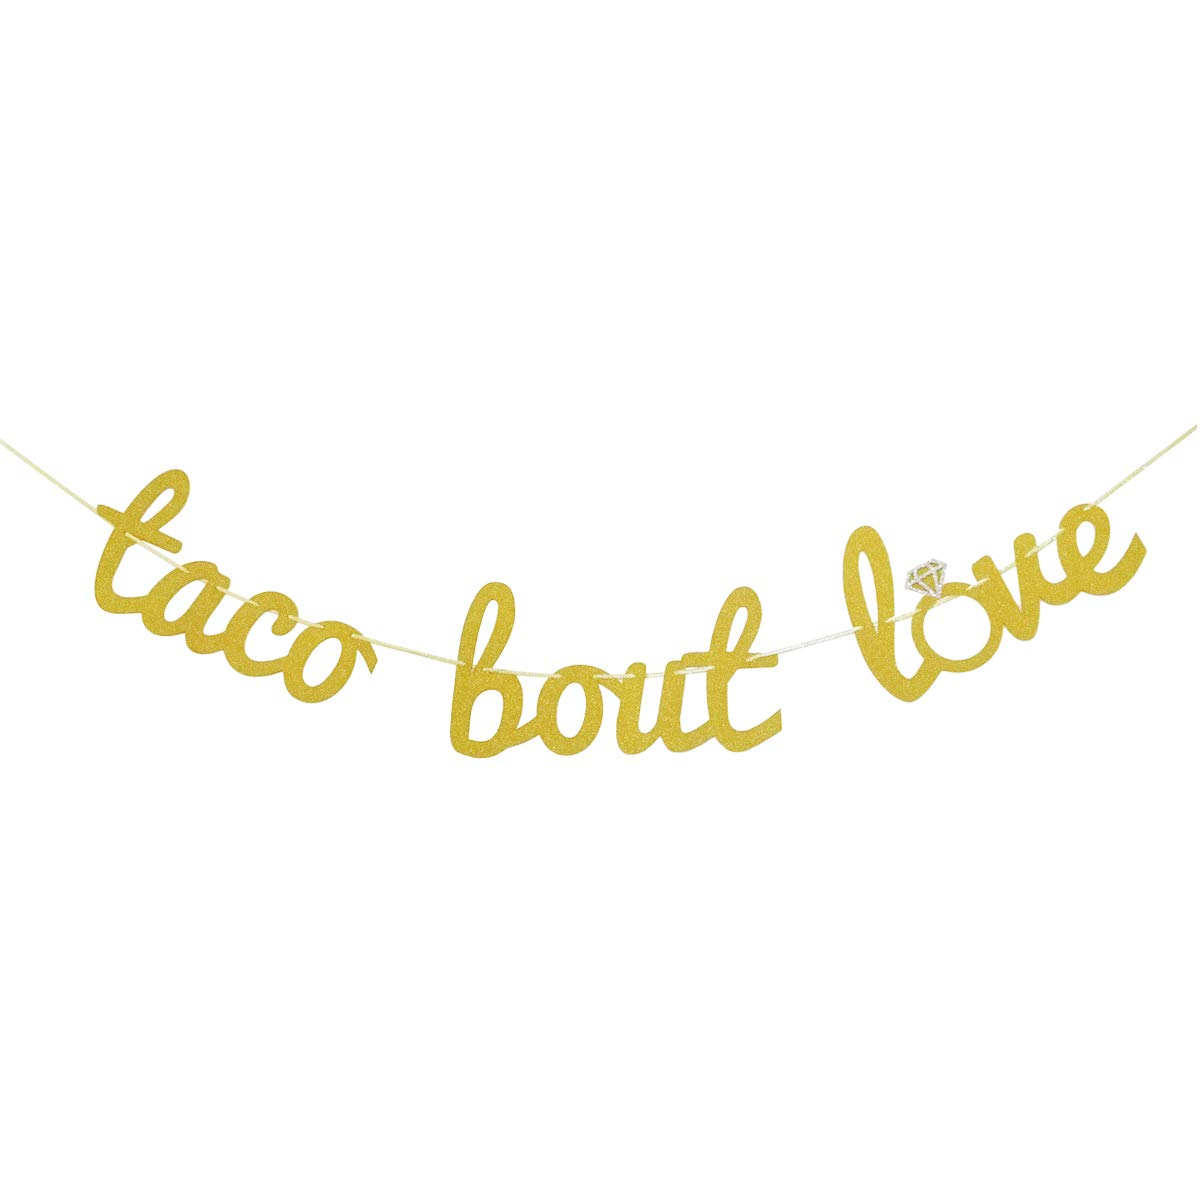 Finseng Taco Bout Love Gold Glitter Banner Sign Garland for Mexican Fiesta Themed Bridal Shower Bachelorette Party Wedding Decorations